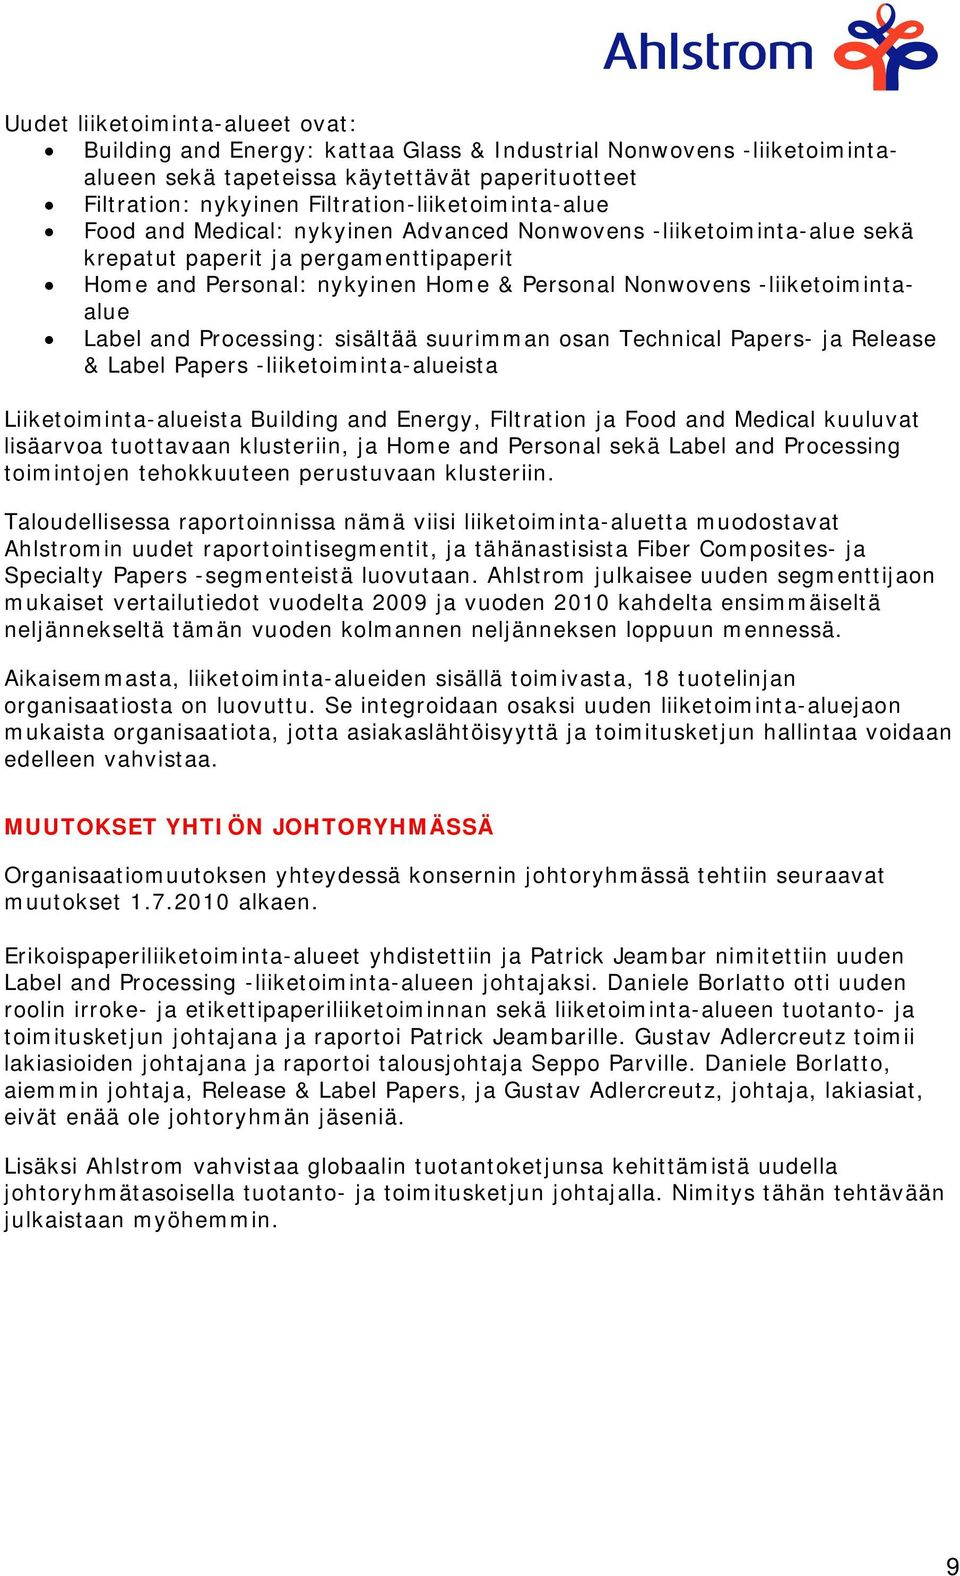 -liiketoimintaalue Label and Processing: sisältää suurimman osan Technical Papers- ja Release & Label Papers -liiketoiminta-alueista Liiketoiminta-alueista Building and Energy, Filtration ja Food and